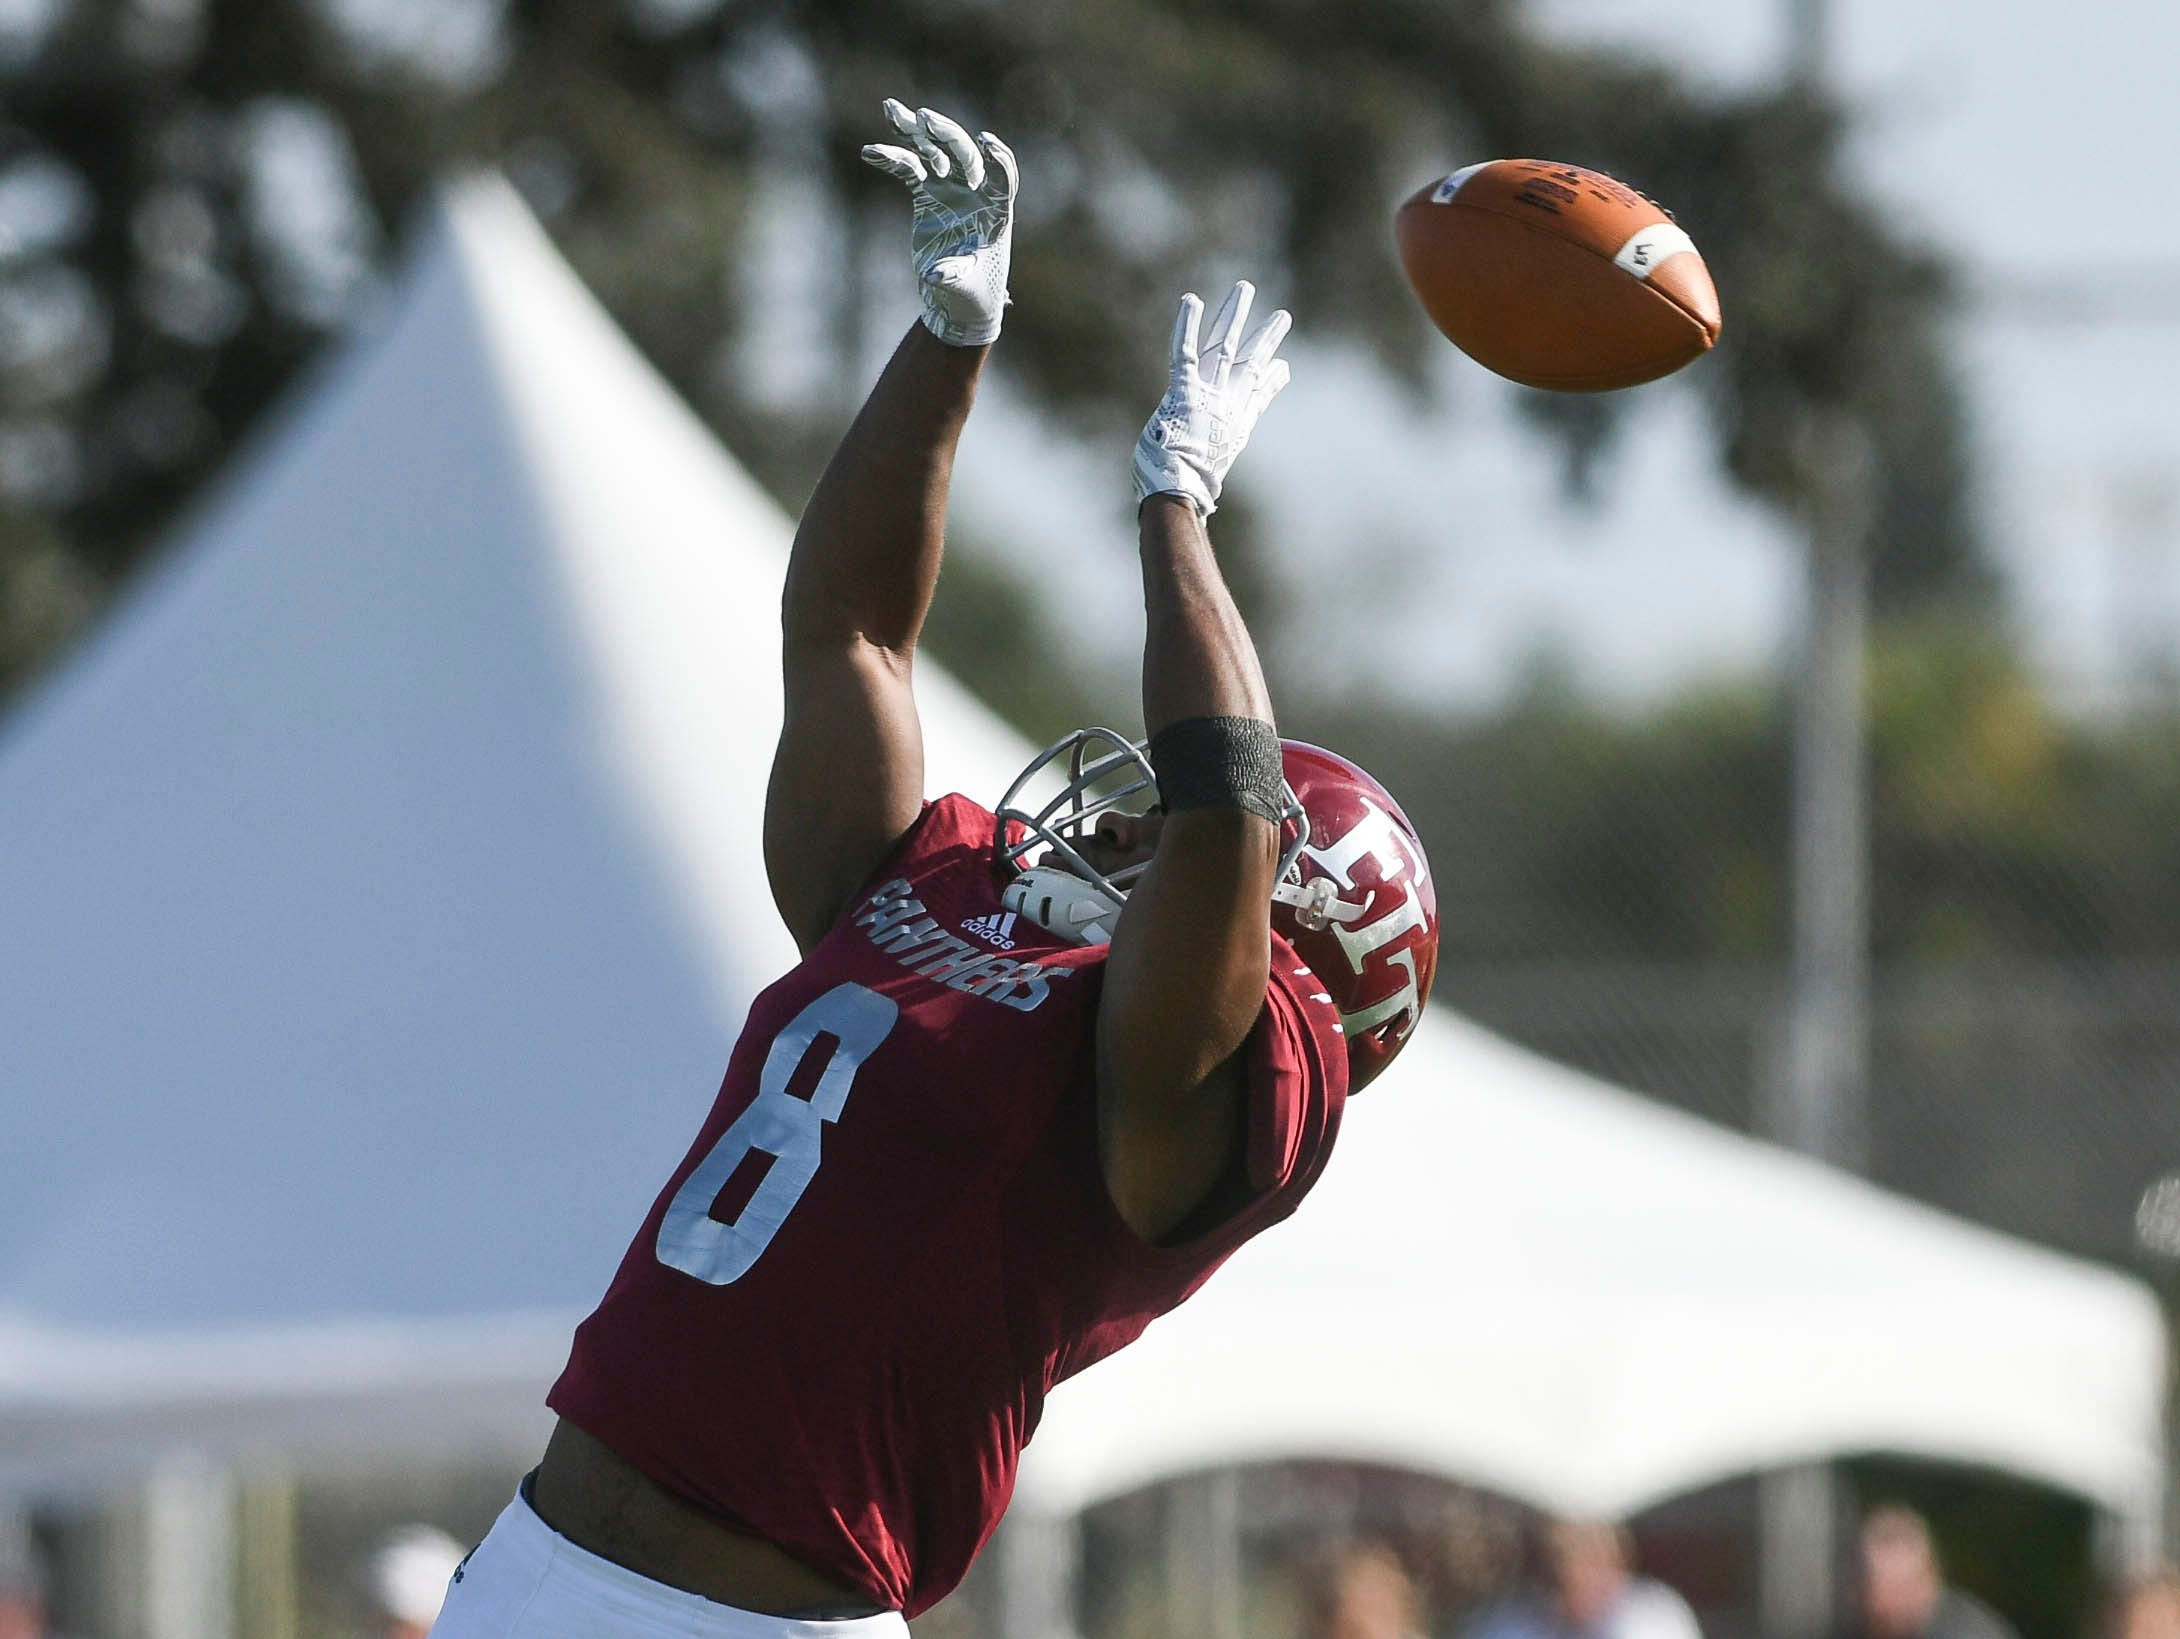 Malachi Timberlake of Florida Tech deflects a North Greenville pass during Saturday's game.